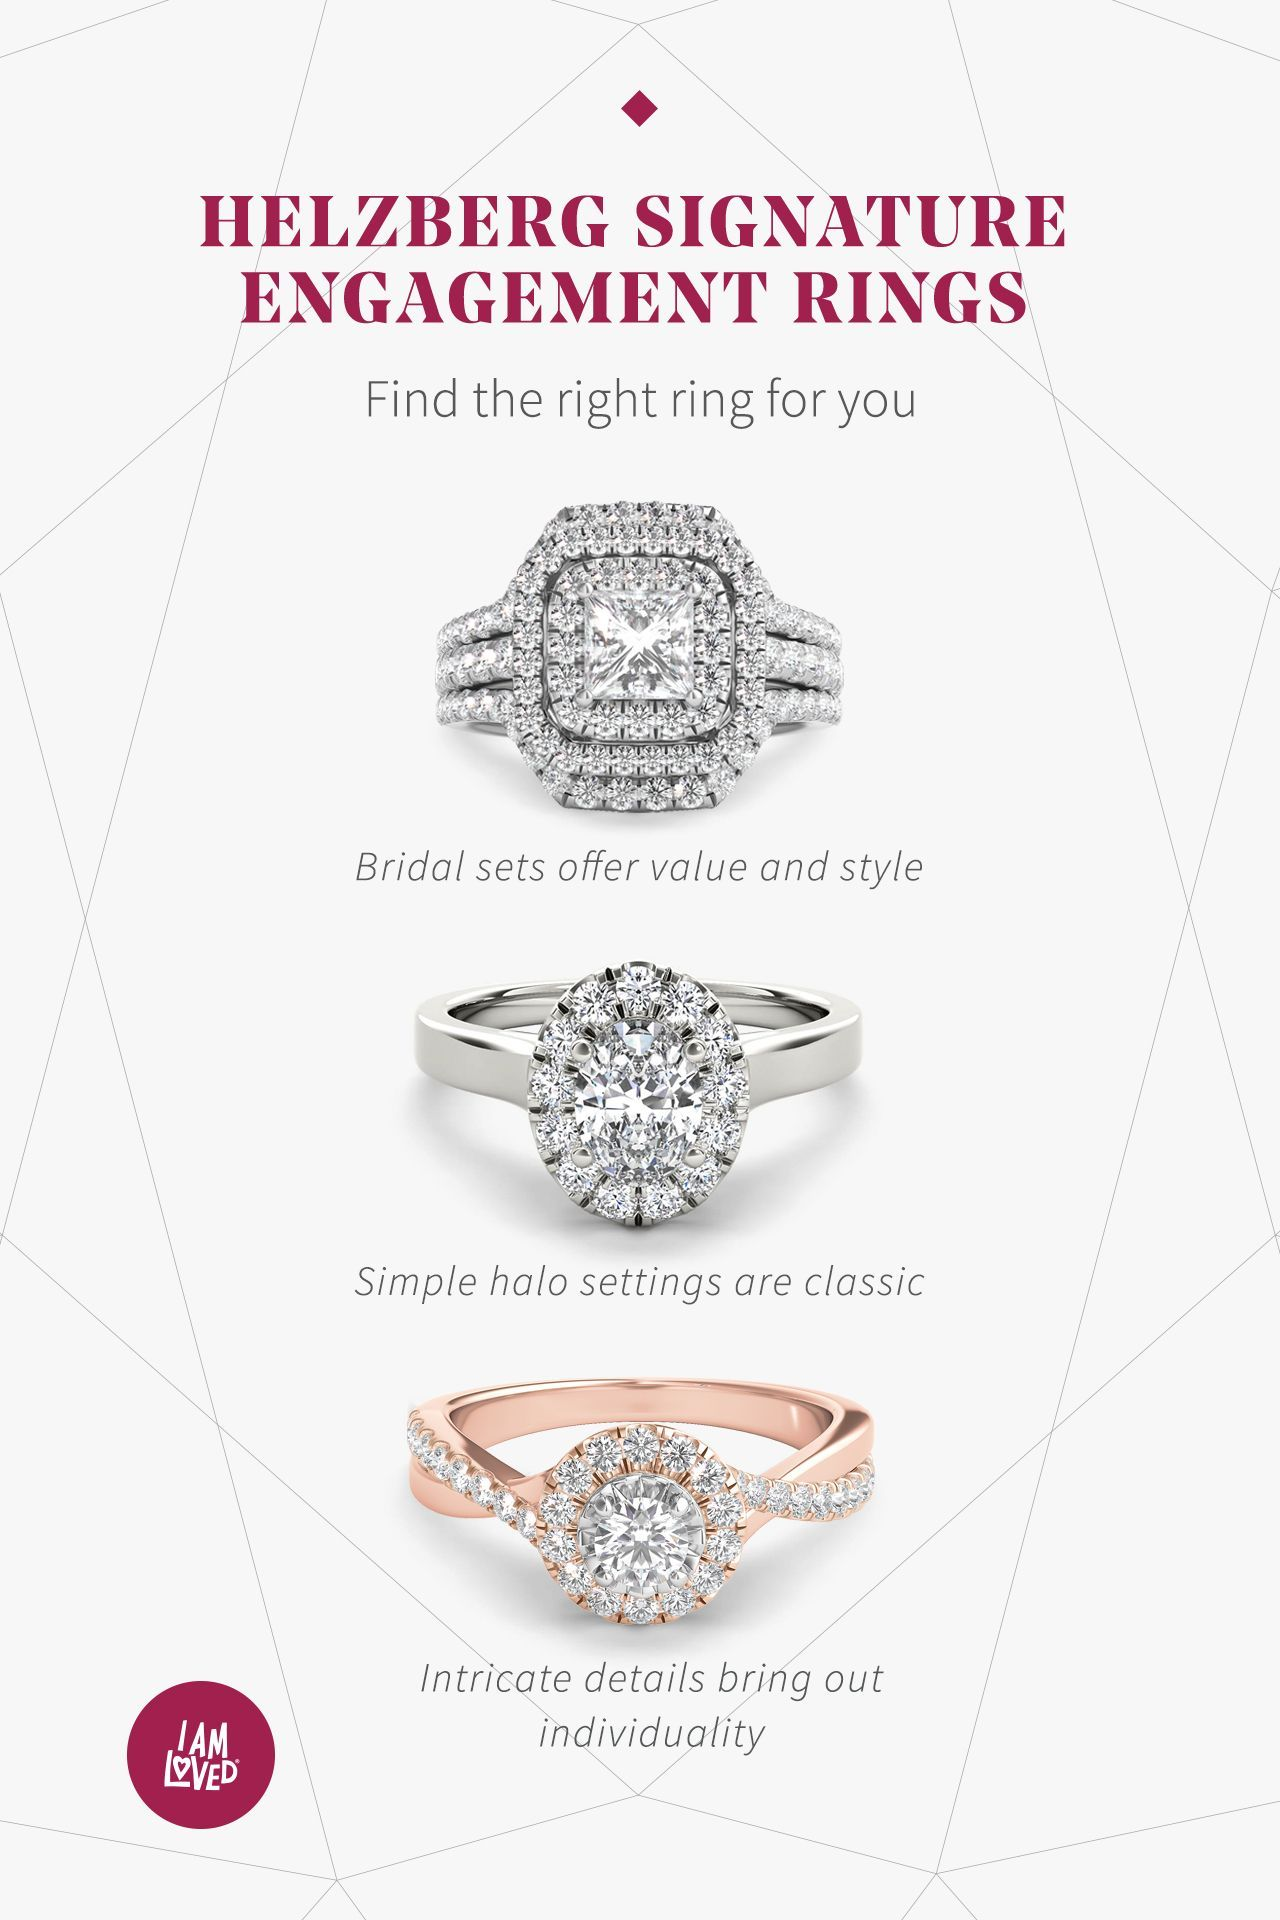 Helzberg Signature Engagement Rings Offer Halo Vintage Classic And Gemstone Styles Shop The Selection Engagement Rings Engagement Wedding Ring Sets Unique